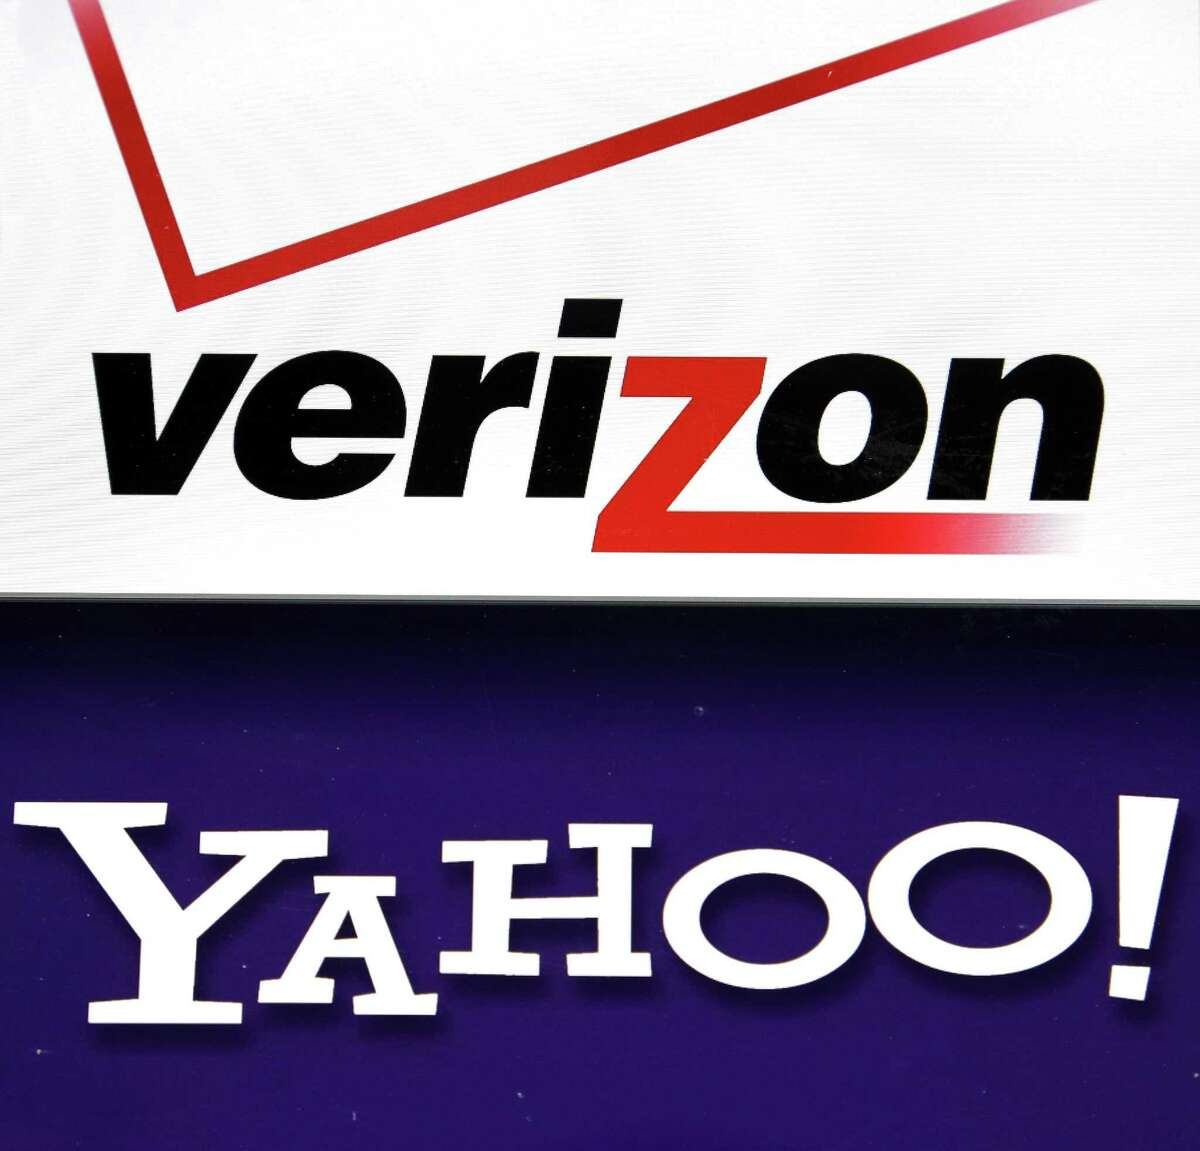 Verizon Communications Inc. is buying Yahoo in hopes of challenging Google and Facebook in the digital advertising market by combining ad technologies and user profiles from Yahoo and the AOL business it already owns. Verizon plans to cut about 2,100 jobs after completing its $4.48 billion acquisition.